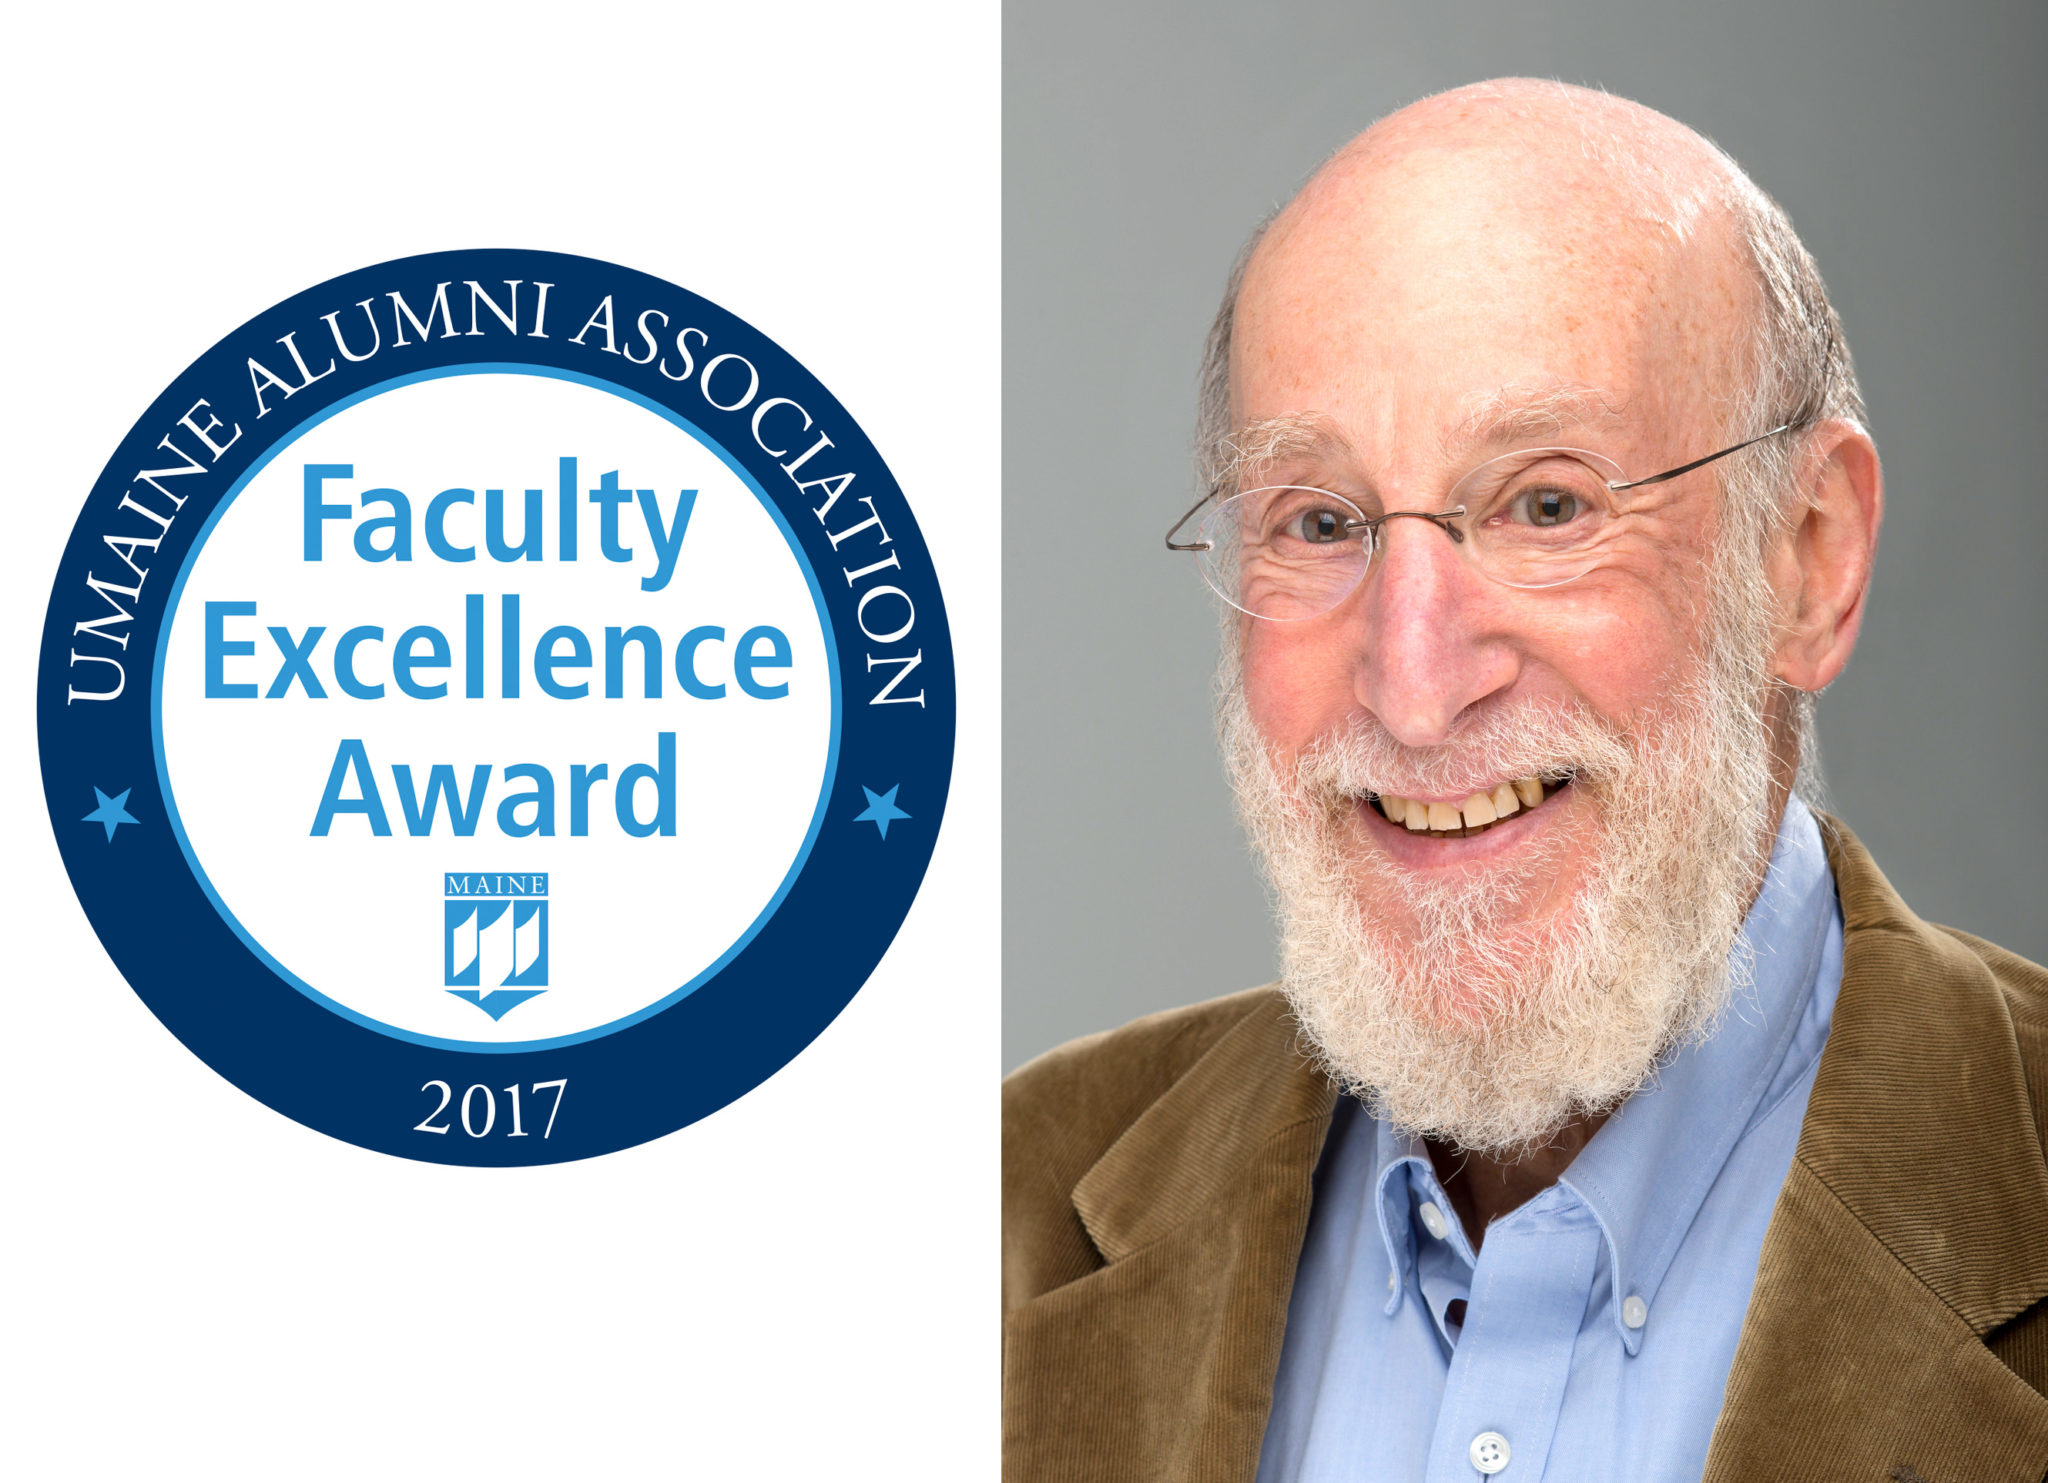 UMaine Alumni Association Faculty Excellence Award Recipient Professor Douglas Allen